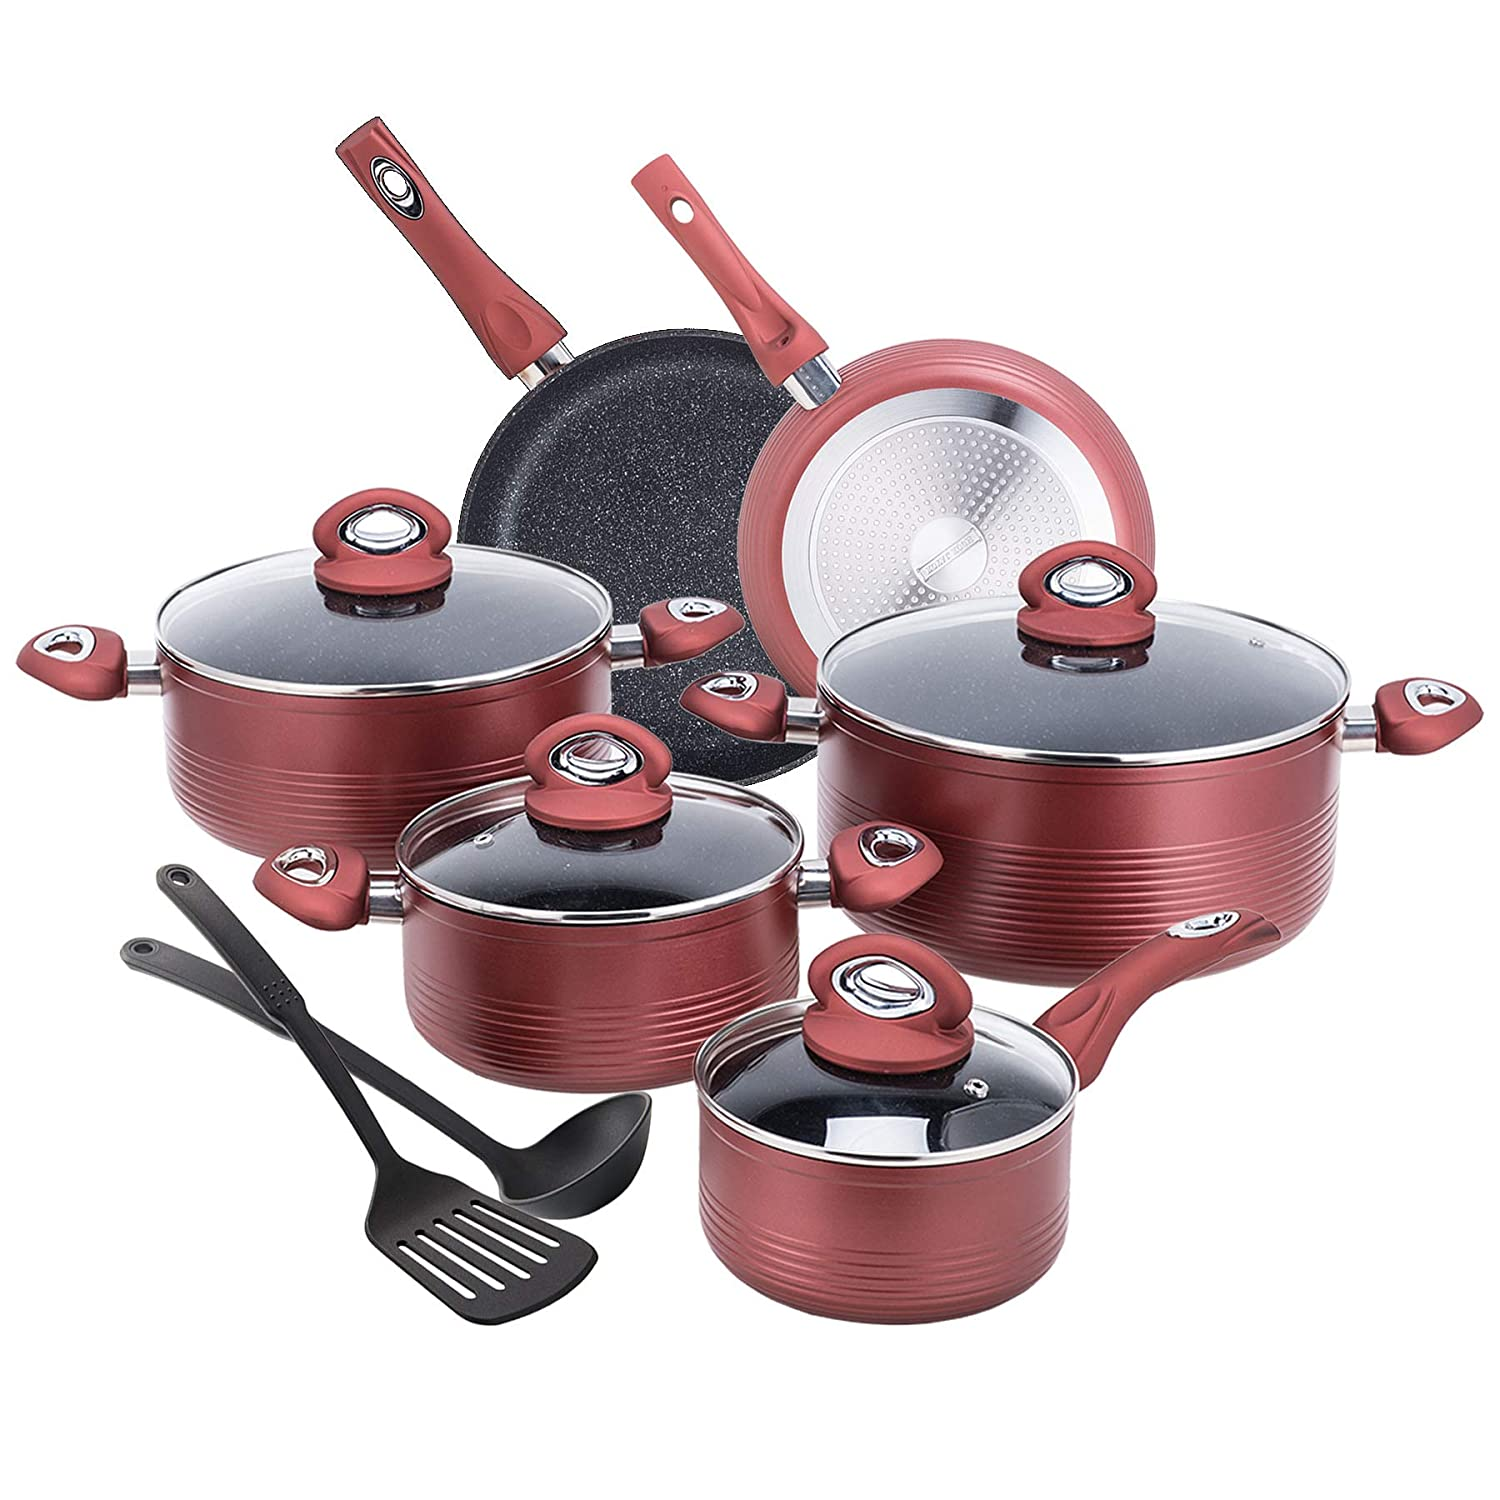 CO-Z 12-PCS Cookware Set Teflon-Coated Nonstick Pots and Pans Set, Induction Compatible, with Bakelite Handle, FDA Certificated, PFOA –Free, Dishwasher-Safe (12-PCS Cookware Set) PFOA –Free ACW-0010-RD